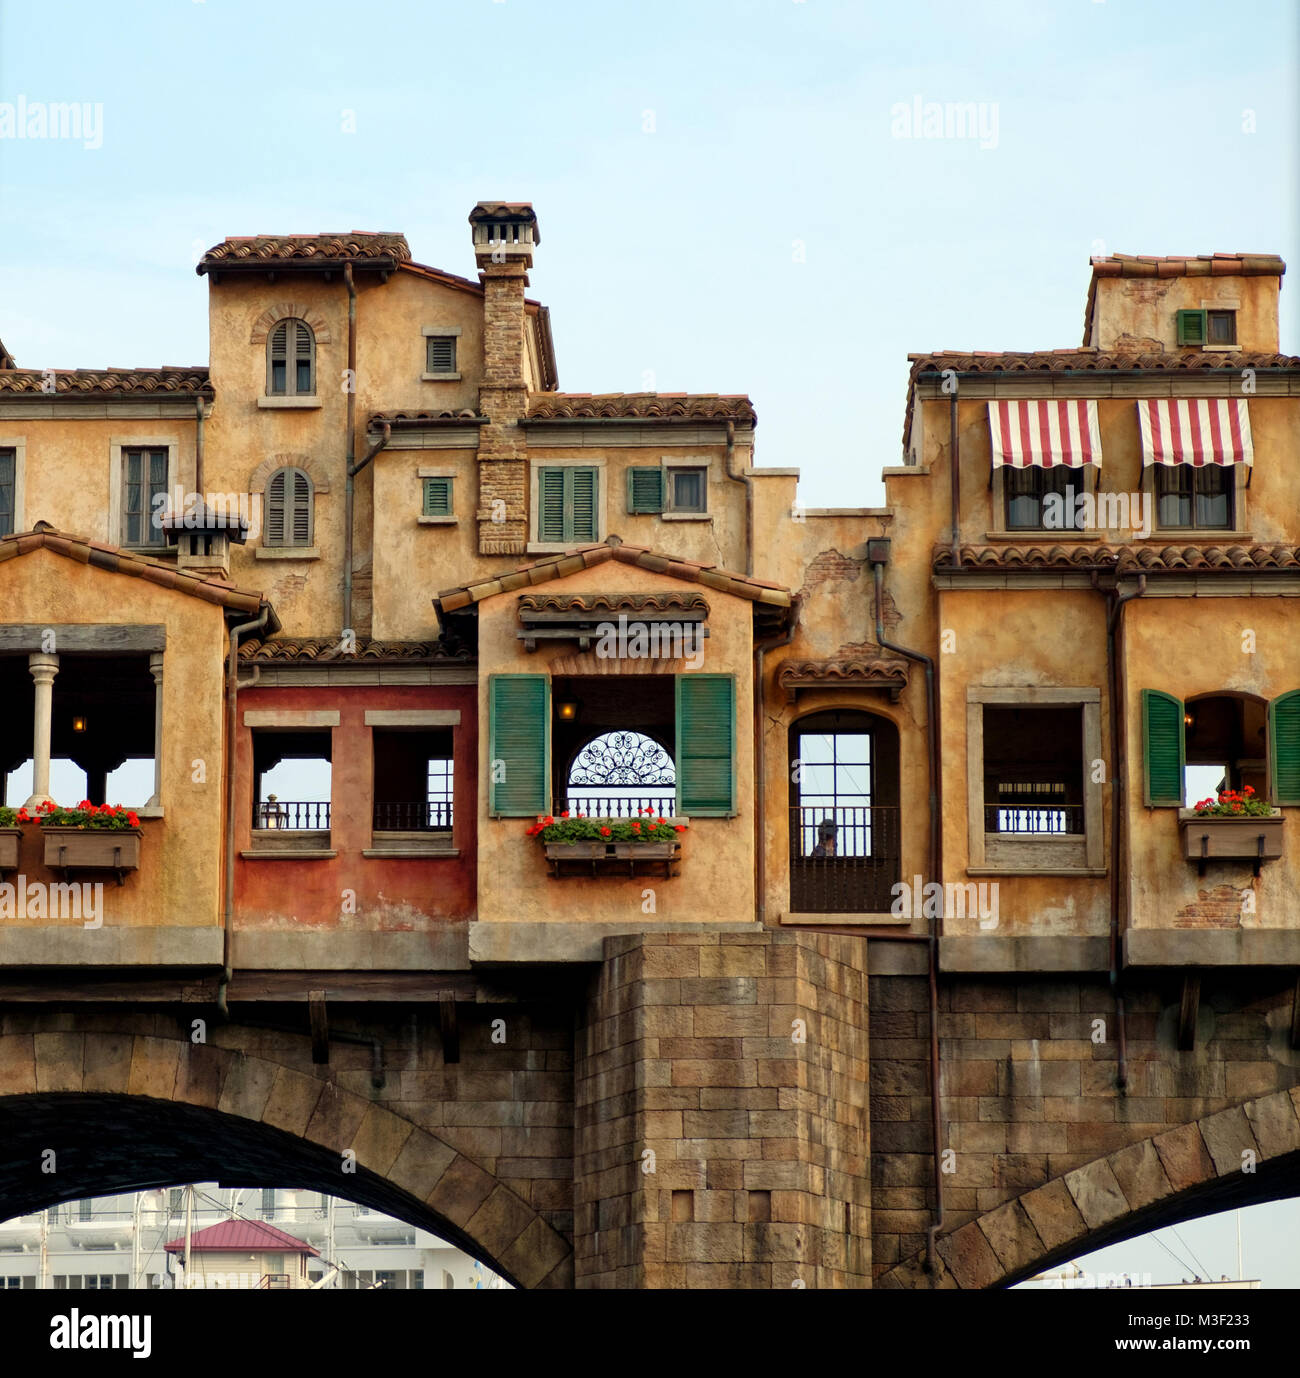 Italian style architecture. Weathered pale orange buildings with terracotta tiled roofs, red & white striped - Stock Image